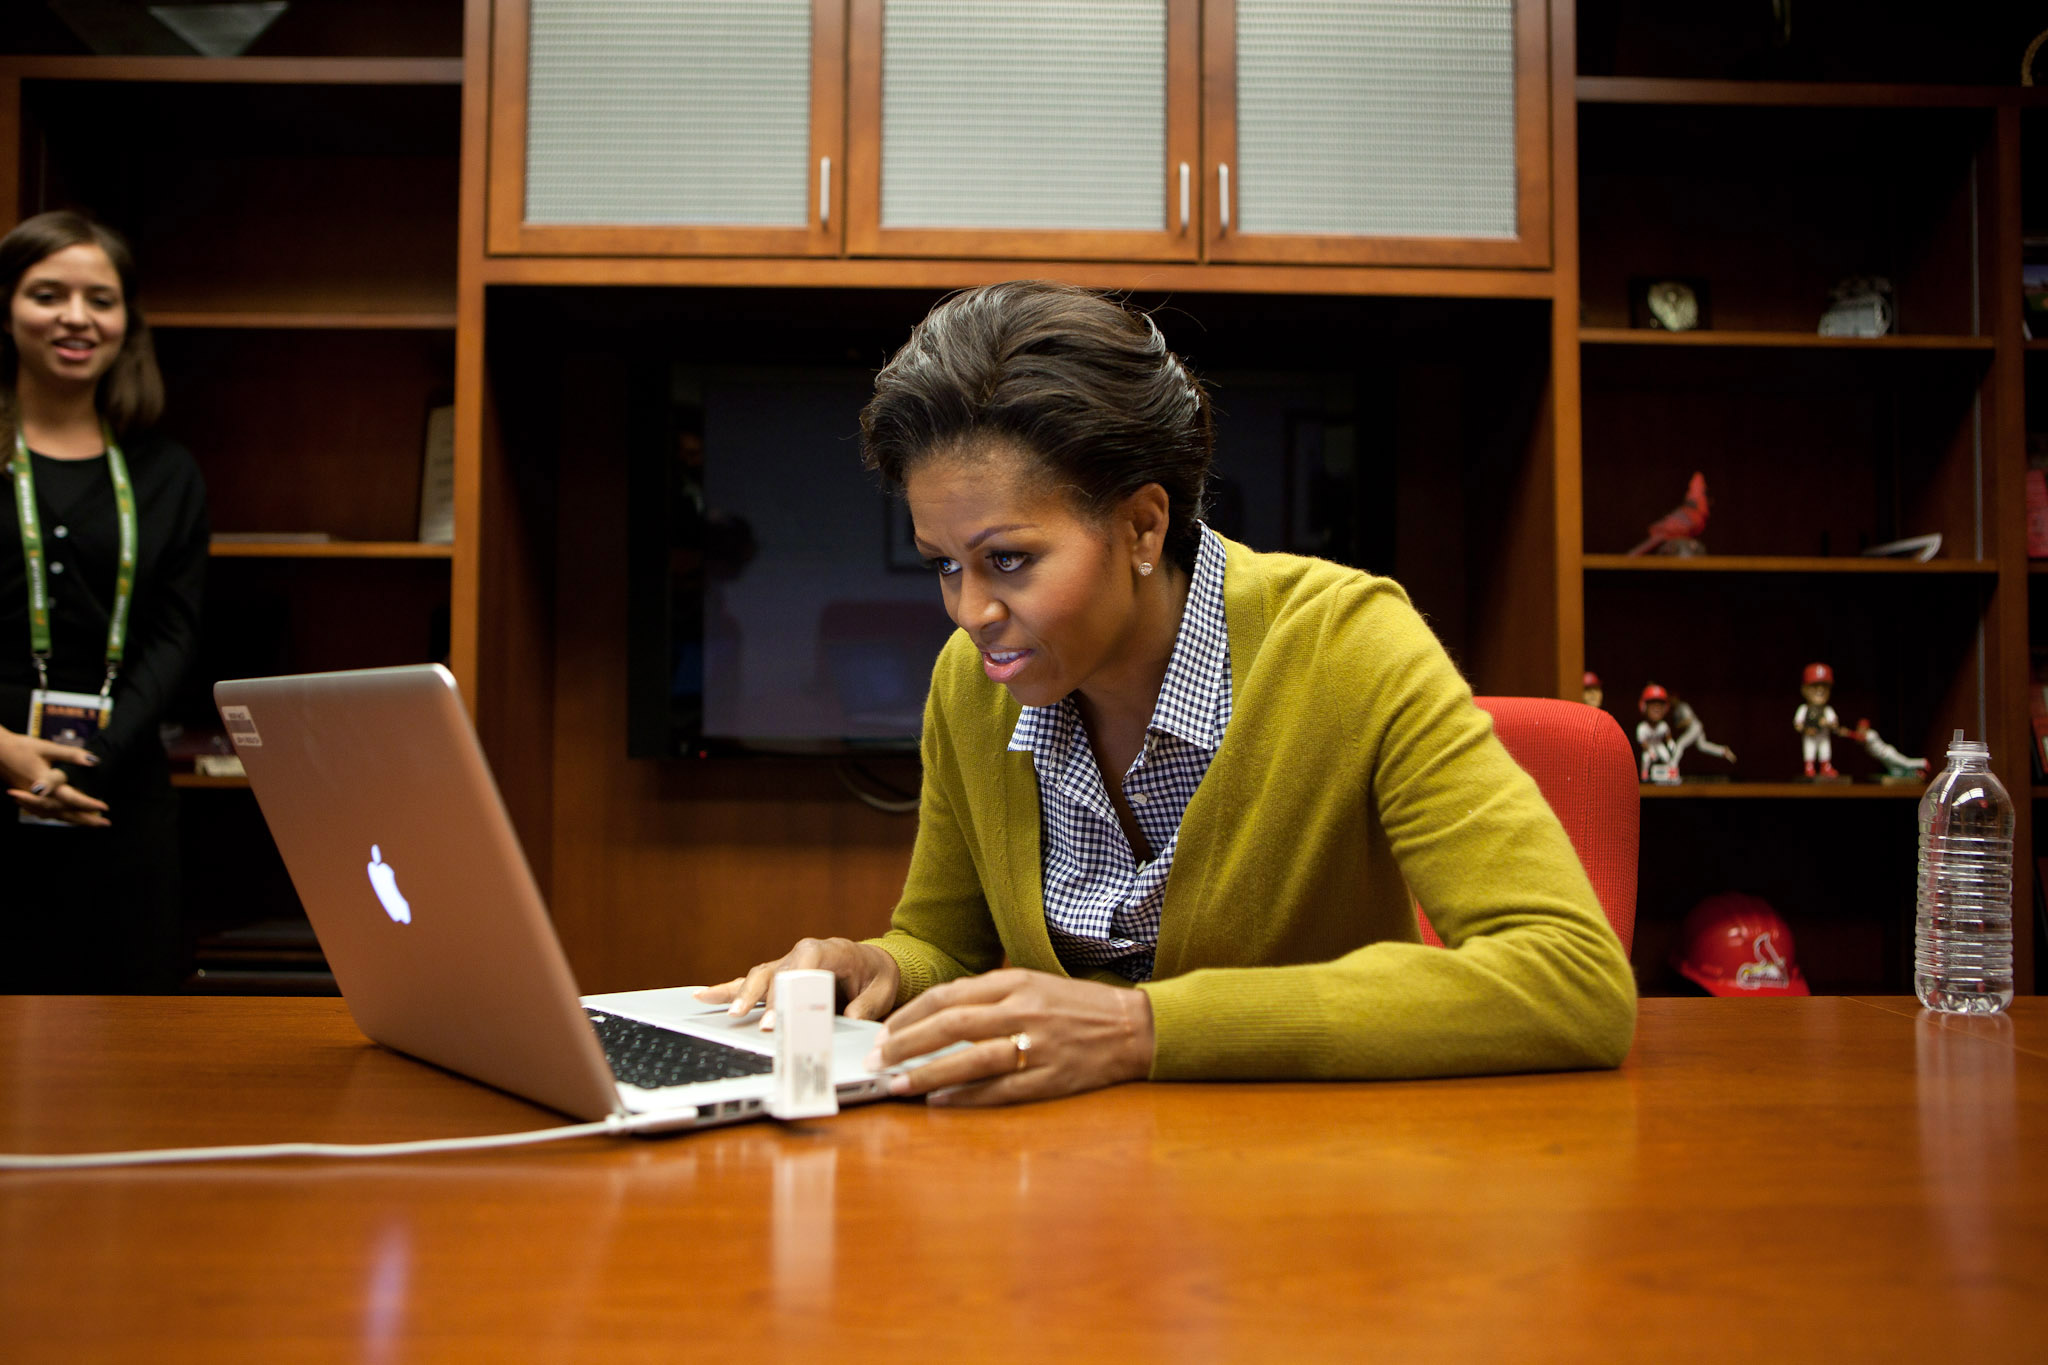 The First Lady makes her first official tweet at Game 1 of the World Series